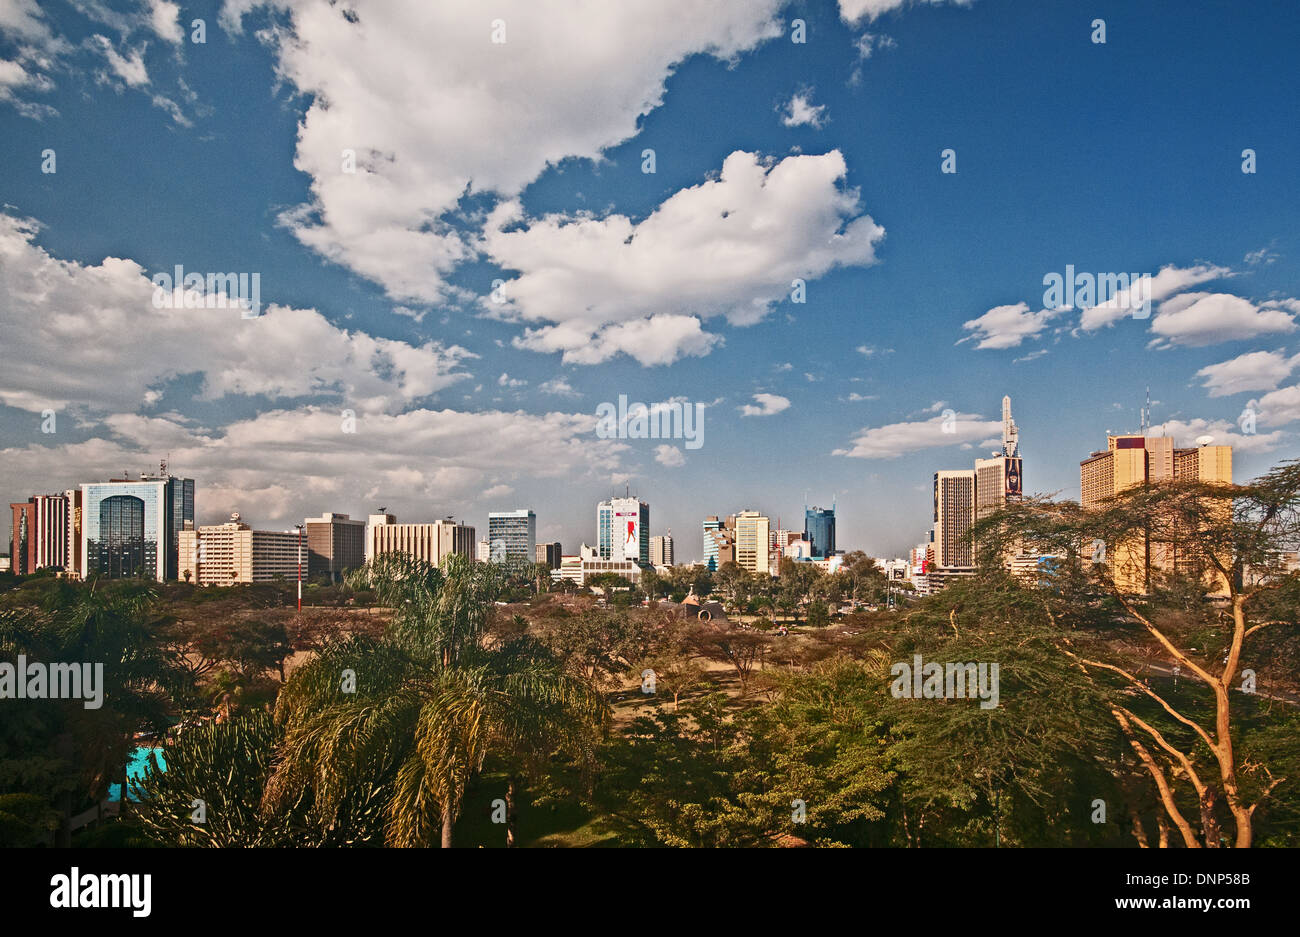 Panorama of Nairobi city skyline with high rise multi storey buildings seen from Nairobi Serena Hotel - Stock Image